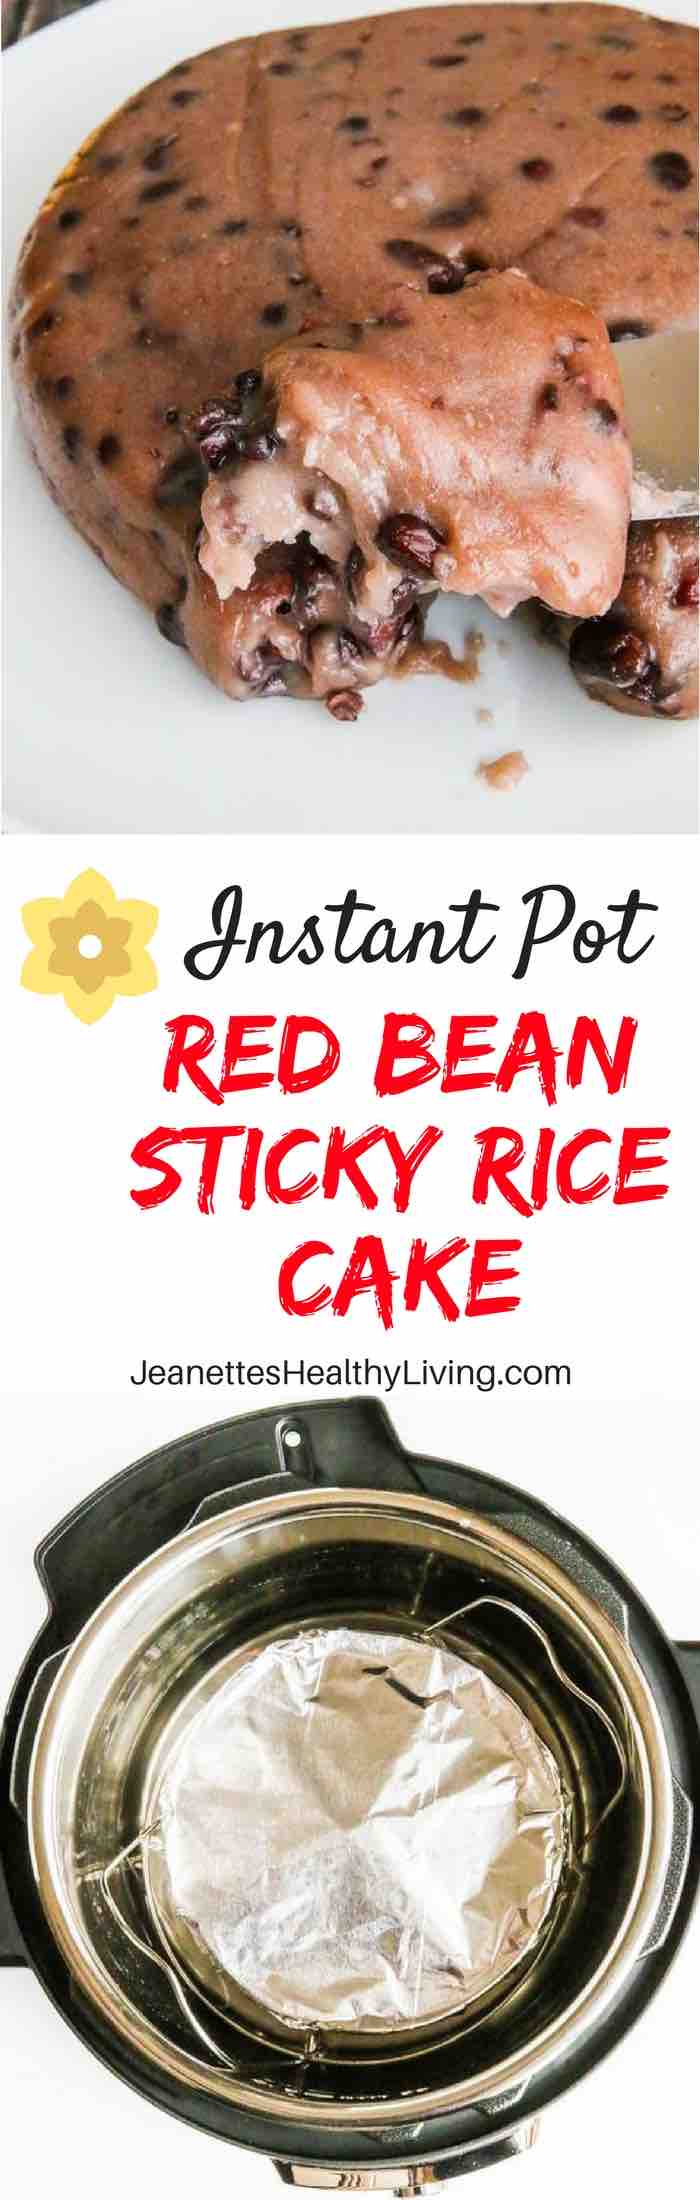 Red Bean Sticky Rice Cake - celebrate Chinese New Year with this traditional steamed mochi-like cake. Pressure steam in an Instant Pot or steam on stovetop.